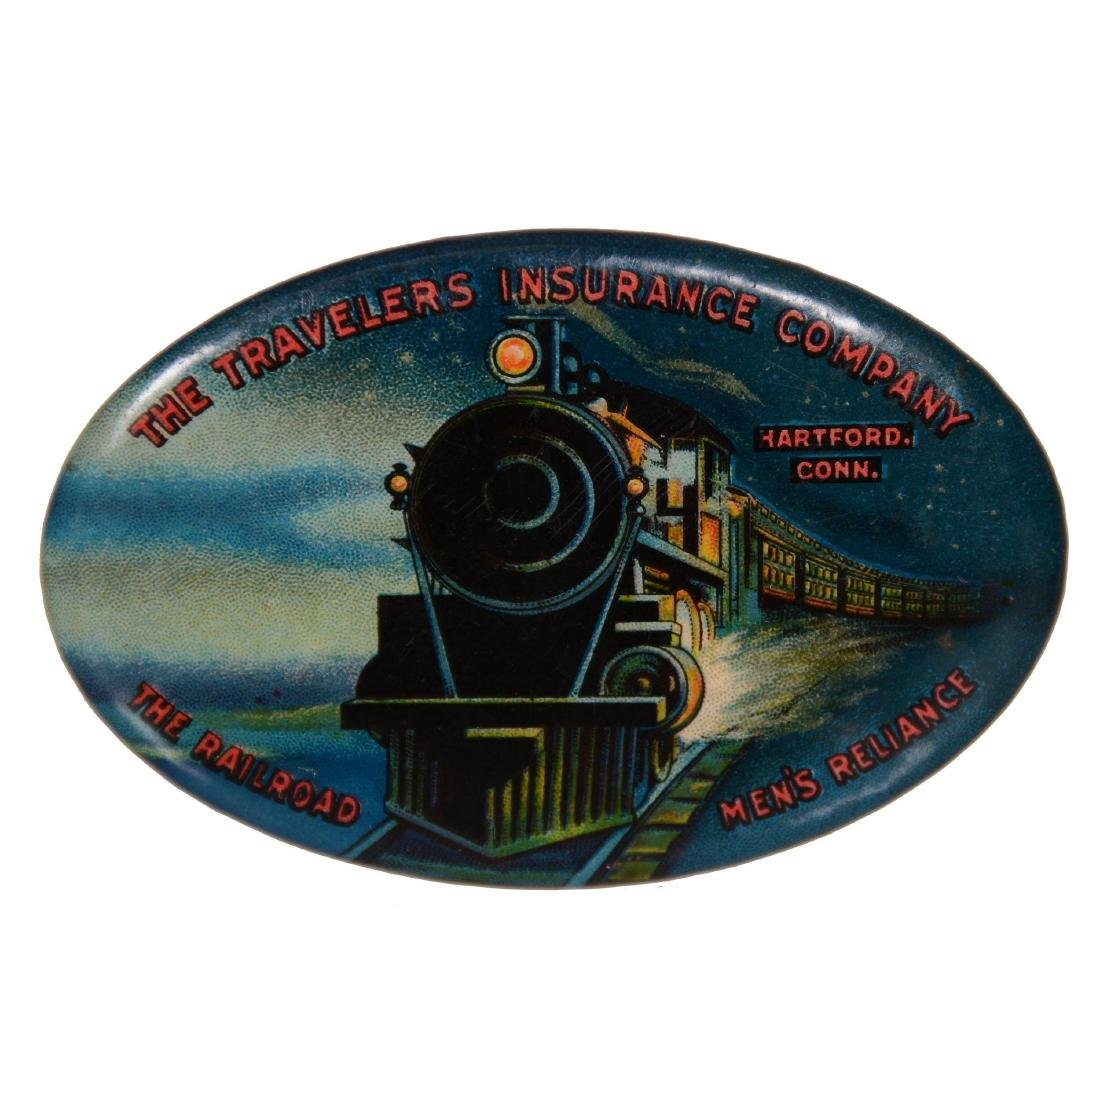 (3) Original Advertising Pocket Mirrors - 2